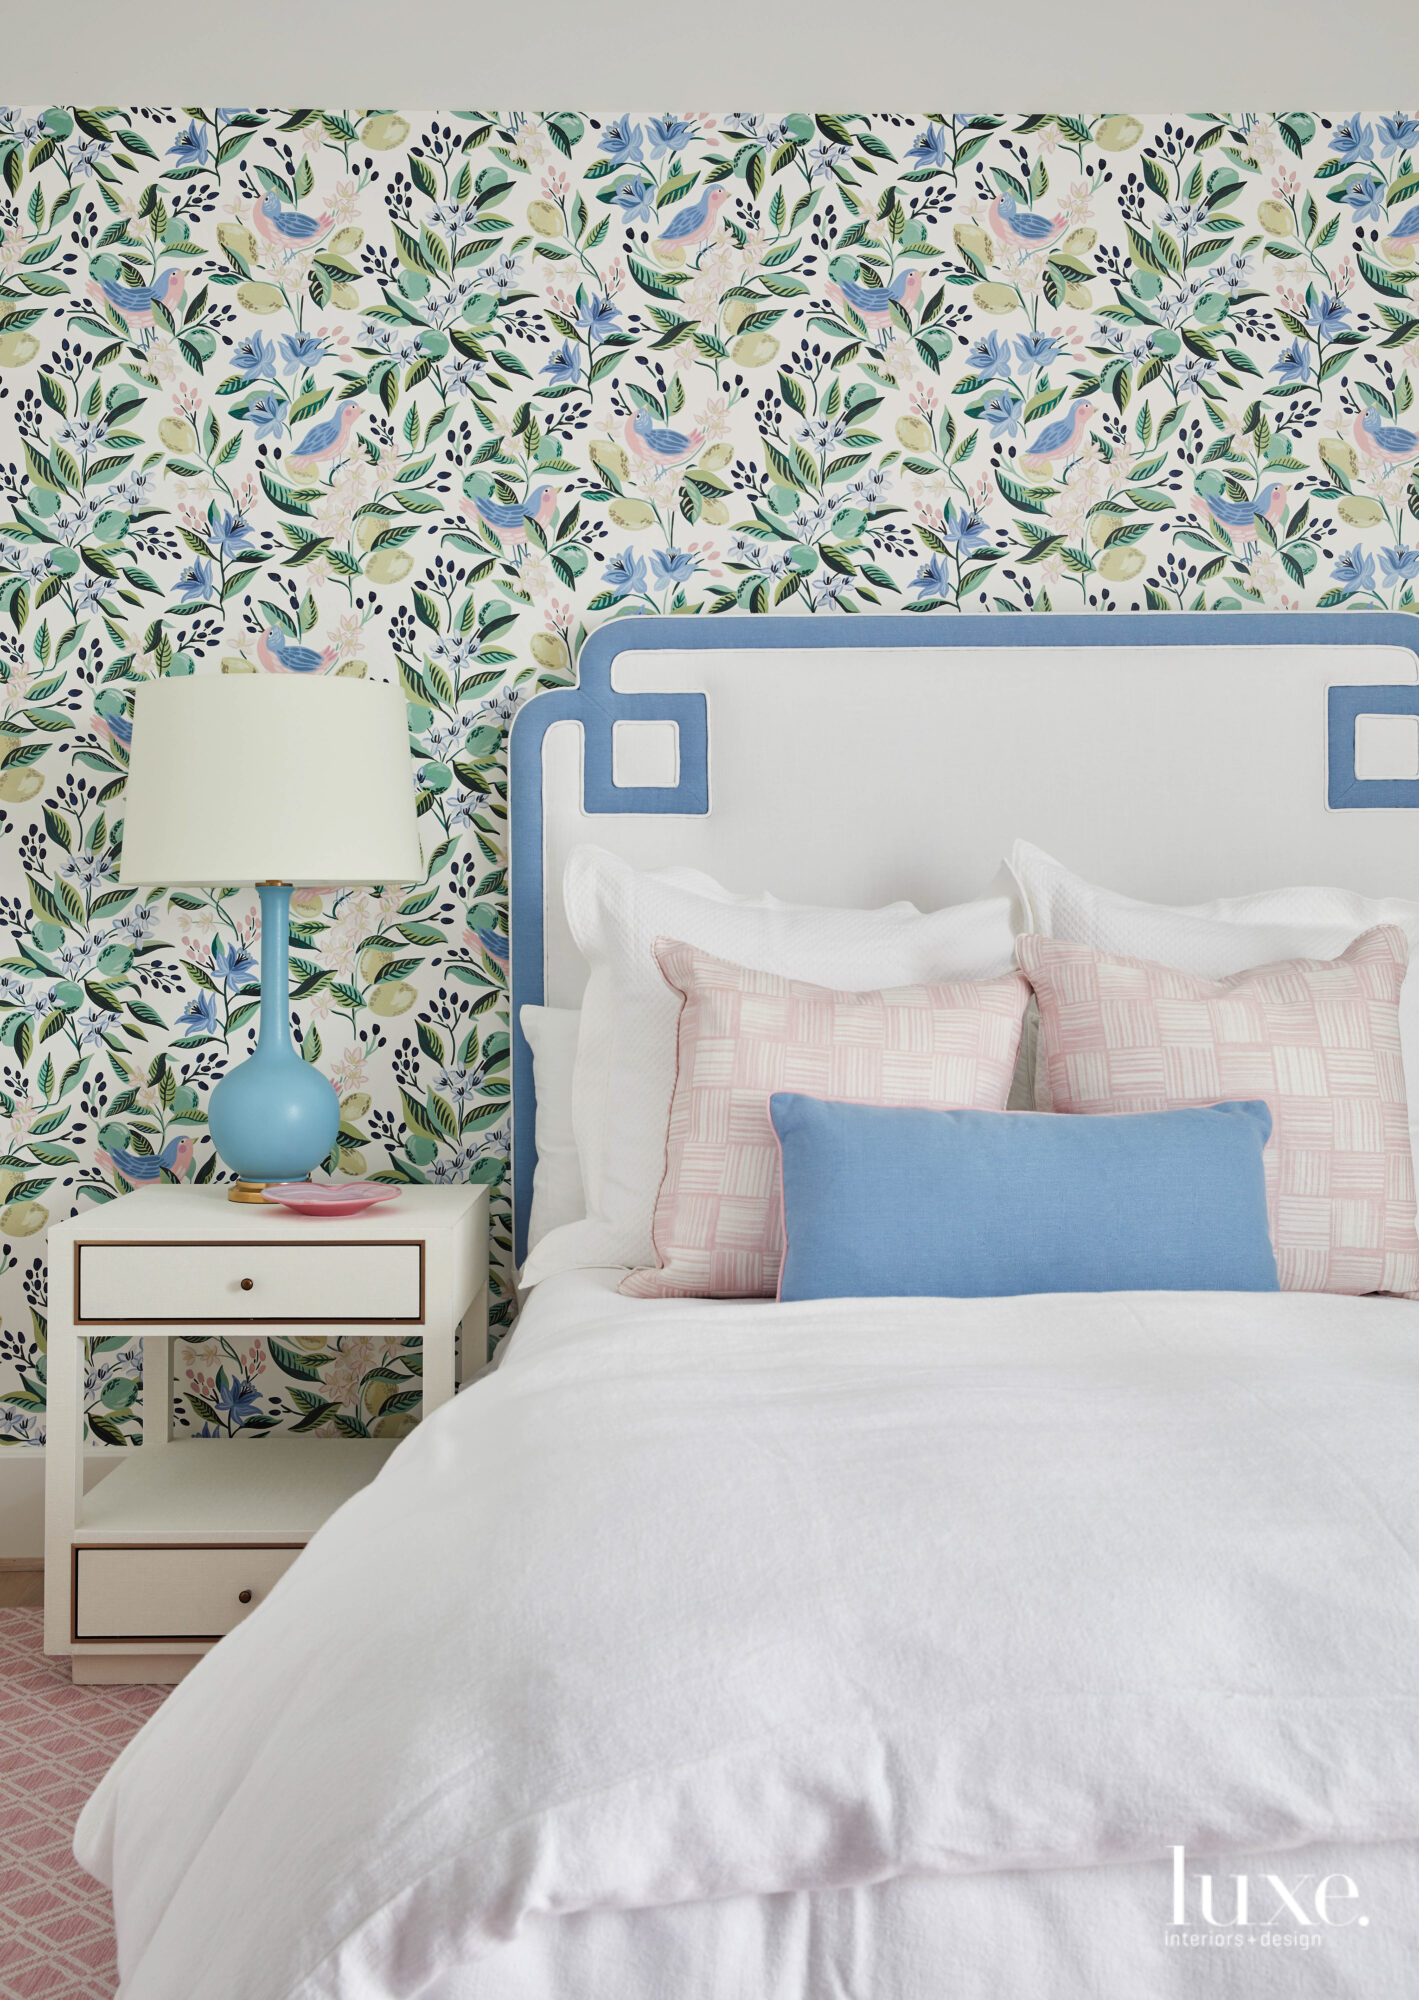 Children's bedroom with floral wallpaper